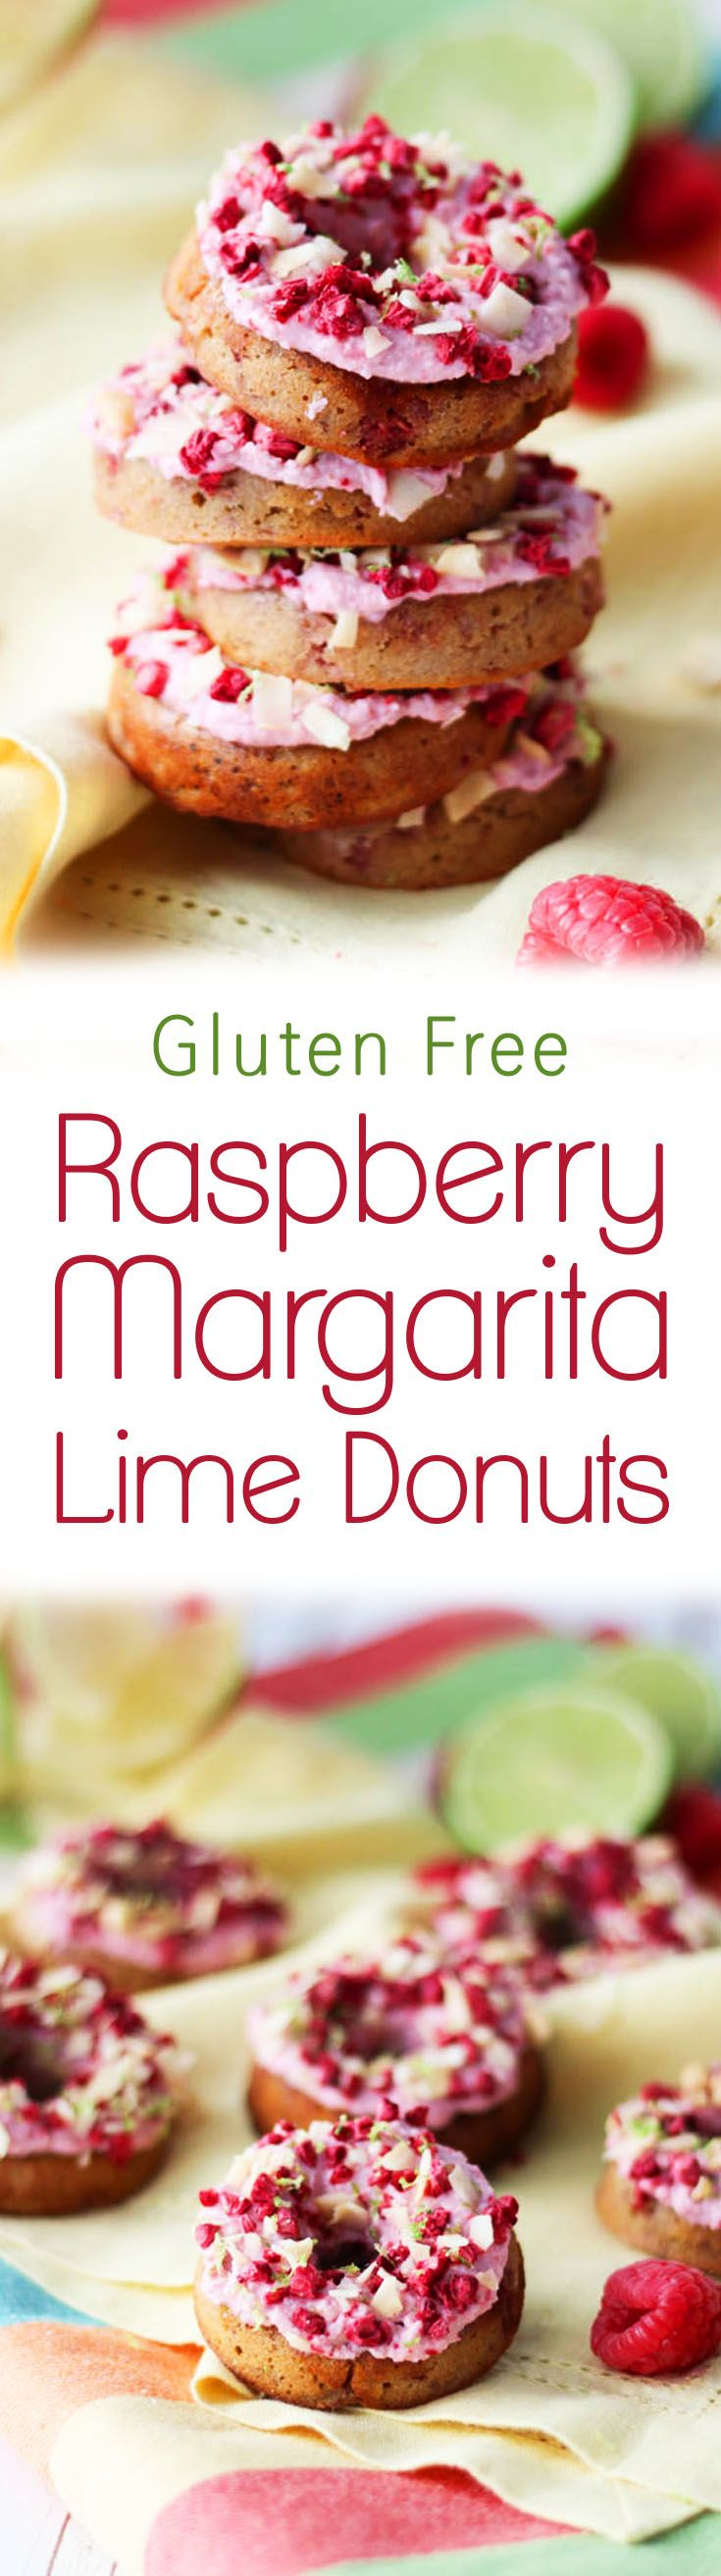 These raspberry margarita naturally gluten free donuts are also dairy free and grain free - made with the goodness of almond flour, coconut yogurt…